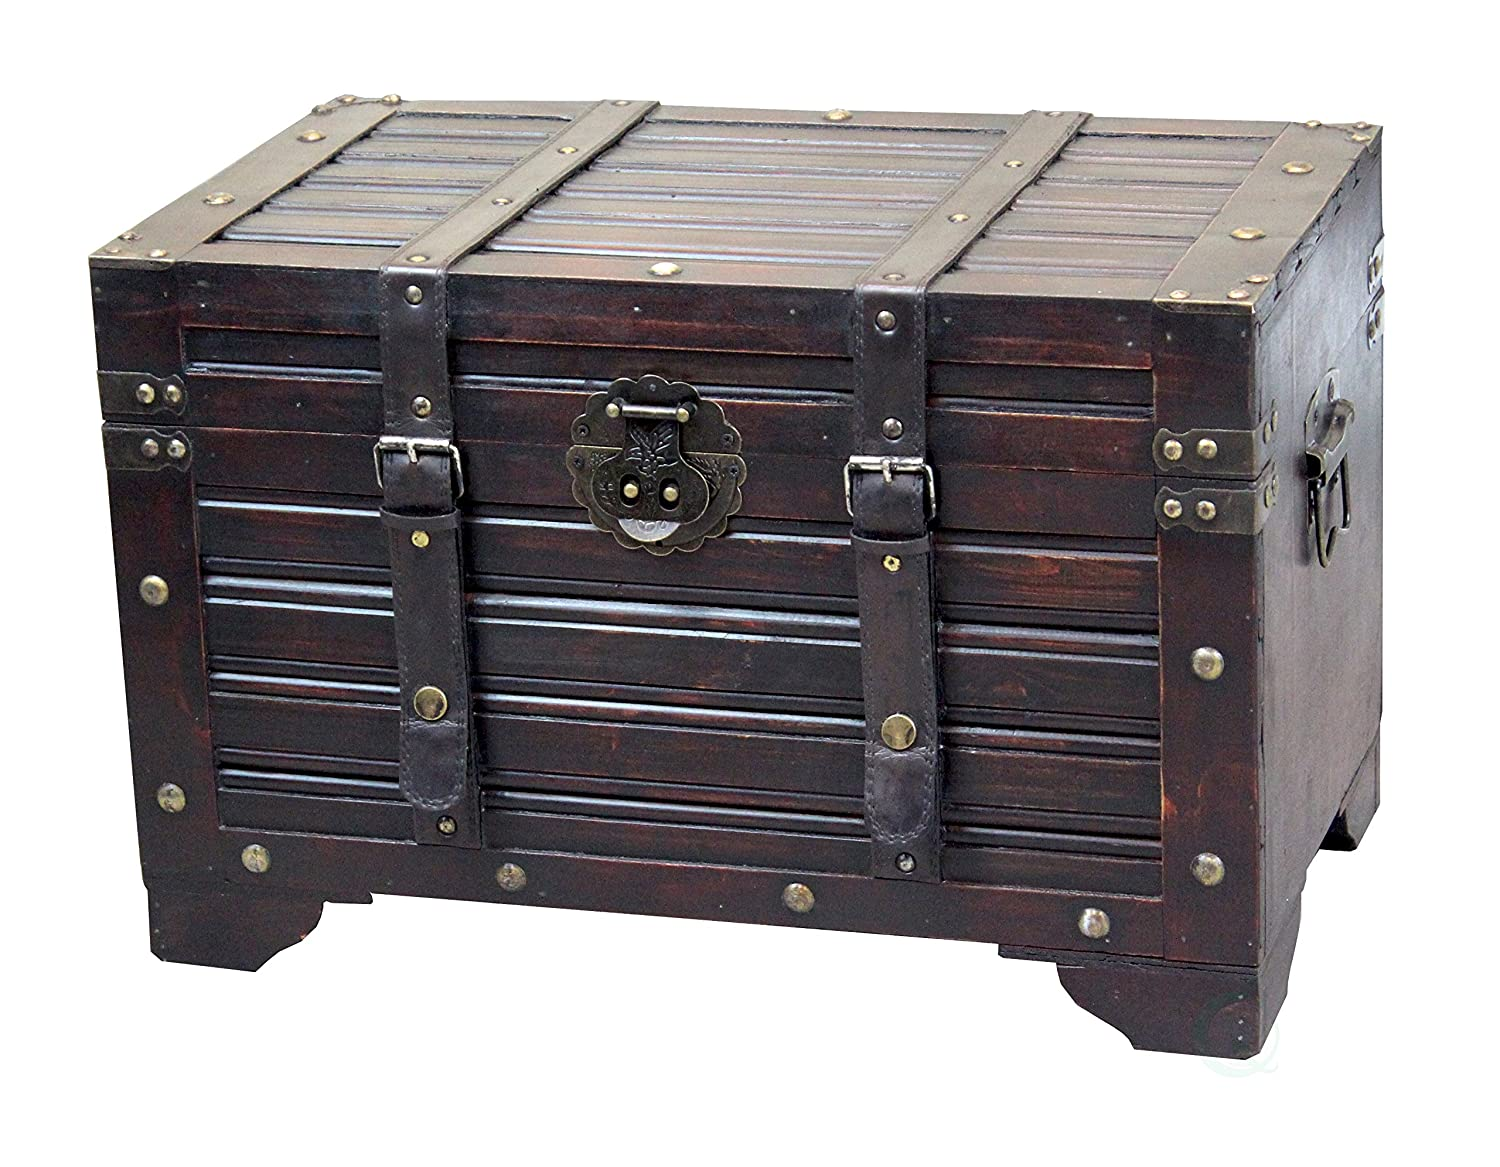 Decorative Antique Style Wooden Storage Trunk with Faux Leather Straps Quickway Imports QI003317